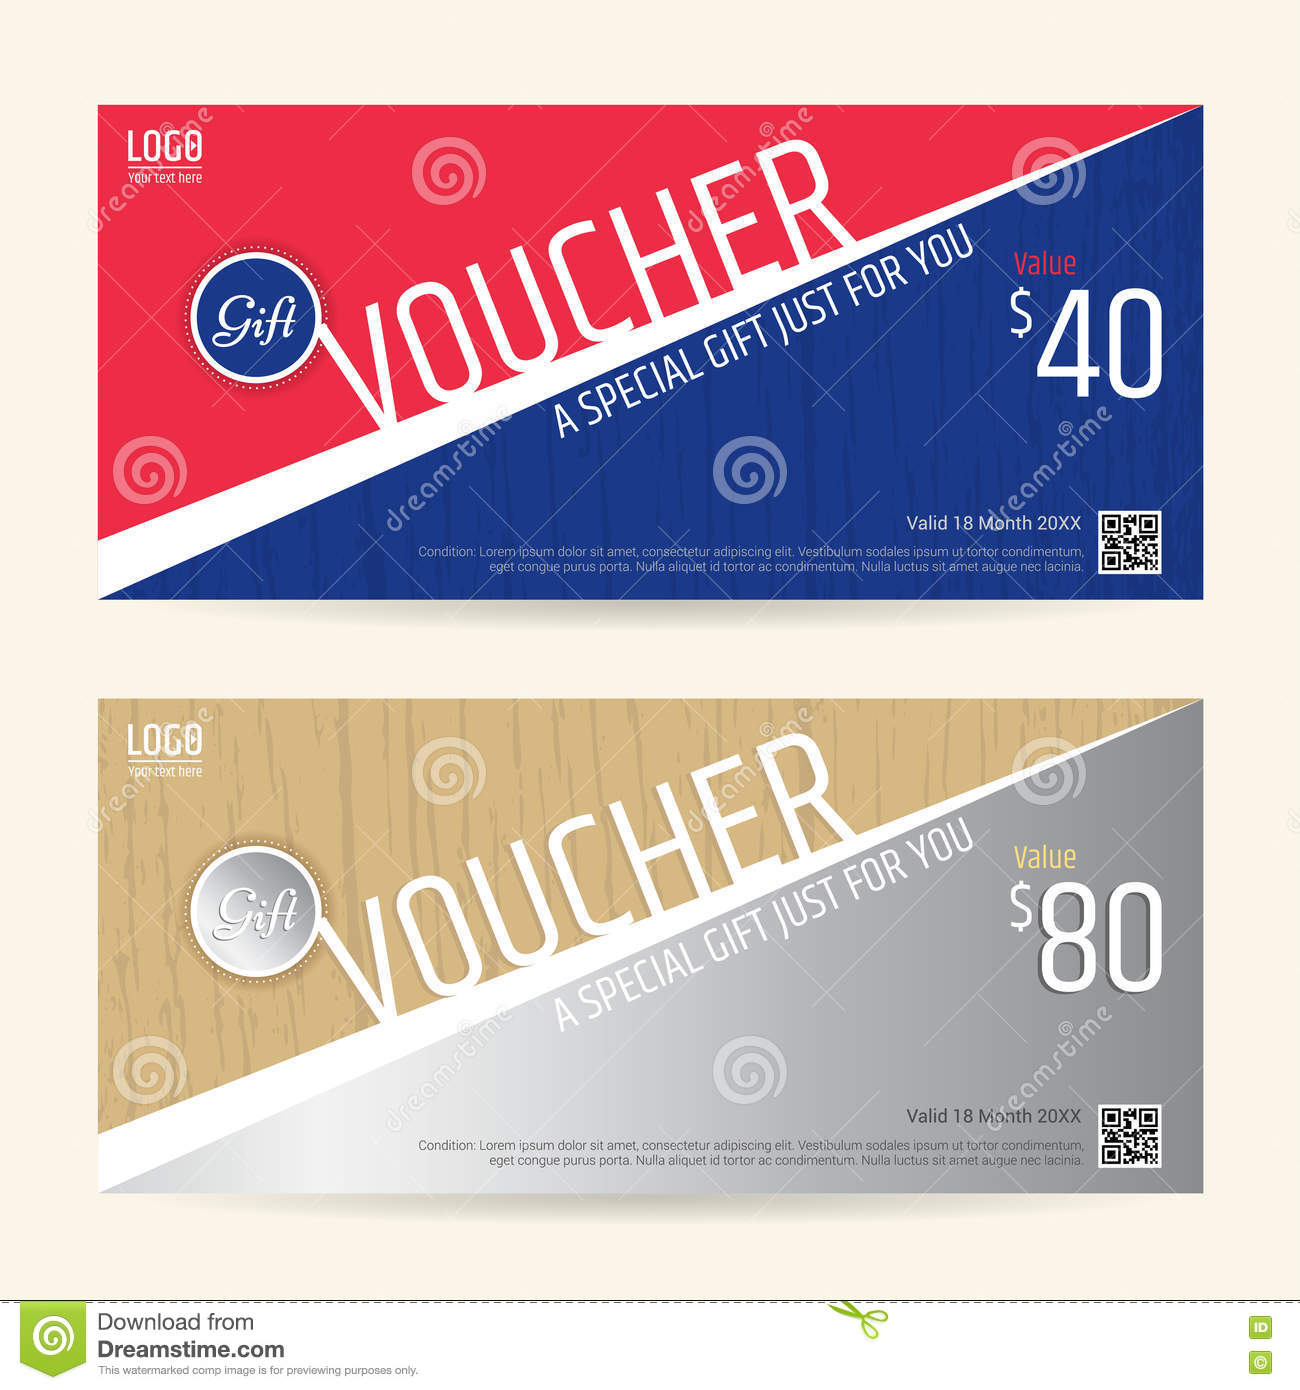 Gift Certificate Voucher Coupon Template Gift : gift certificate voucher coupon template sport theme vector 71953028 from www.litocencoa.com size 1300 x 1390 jpeg 169kB